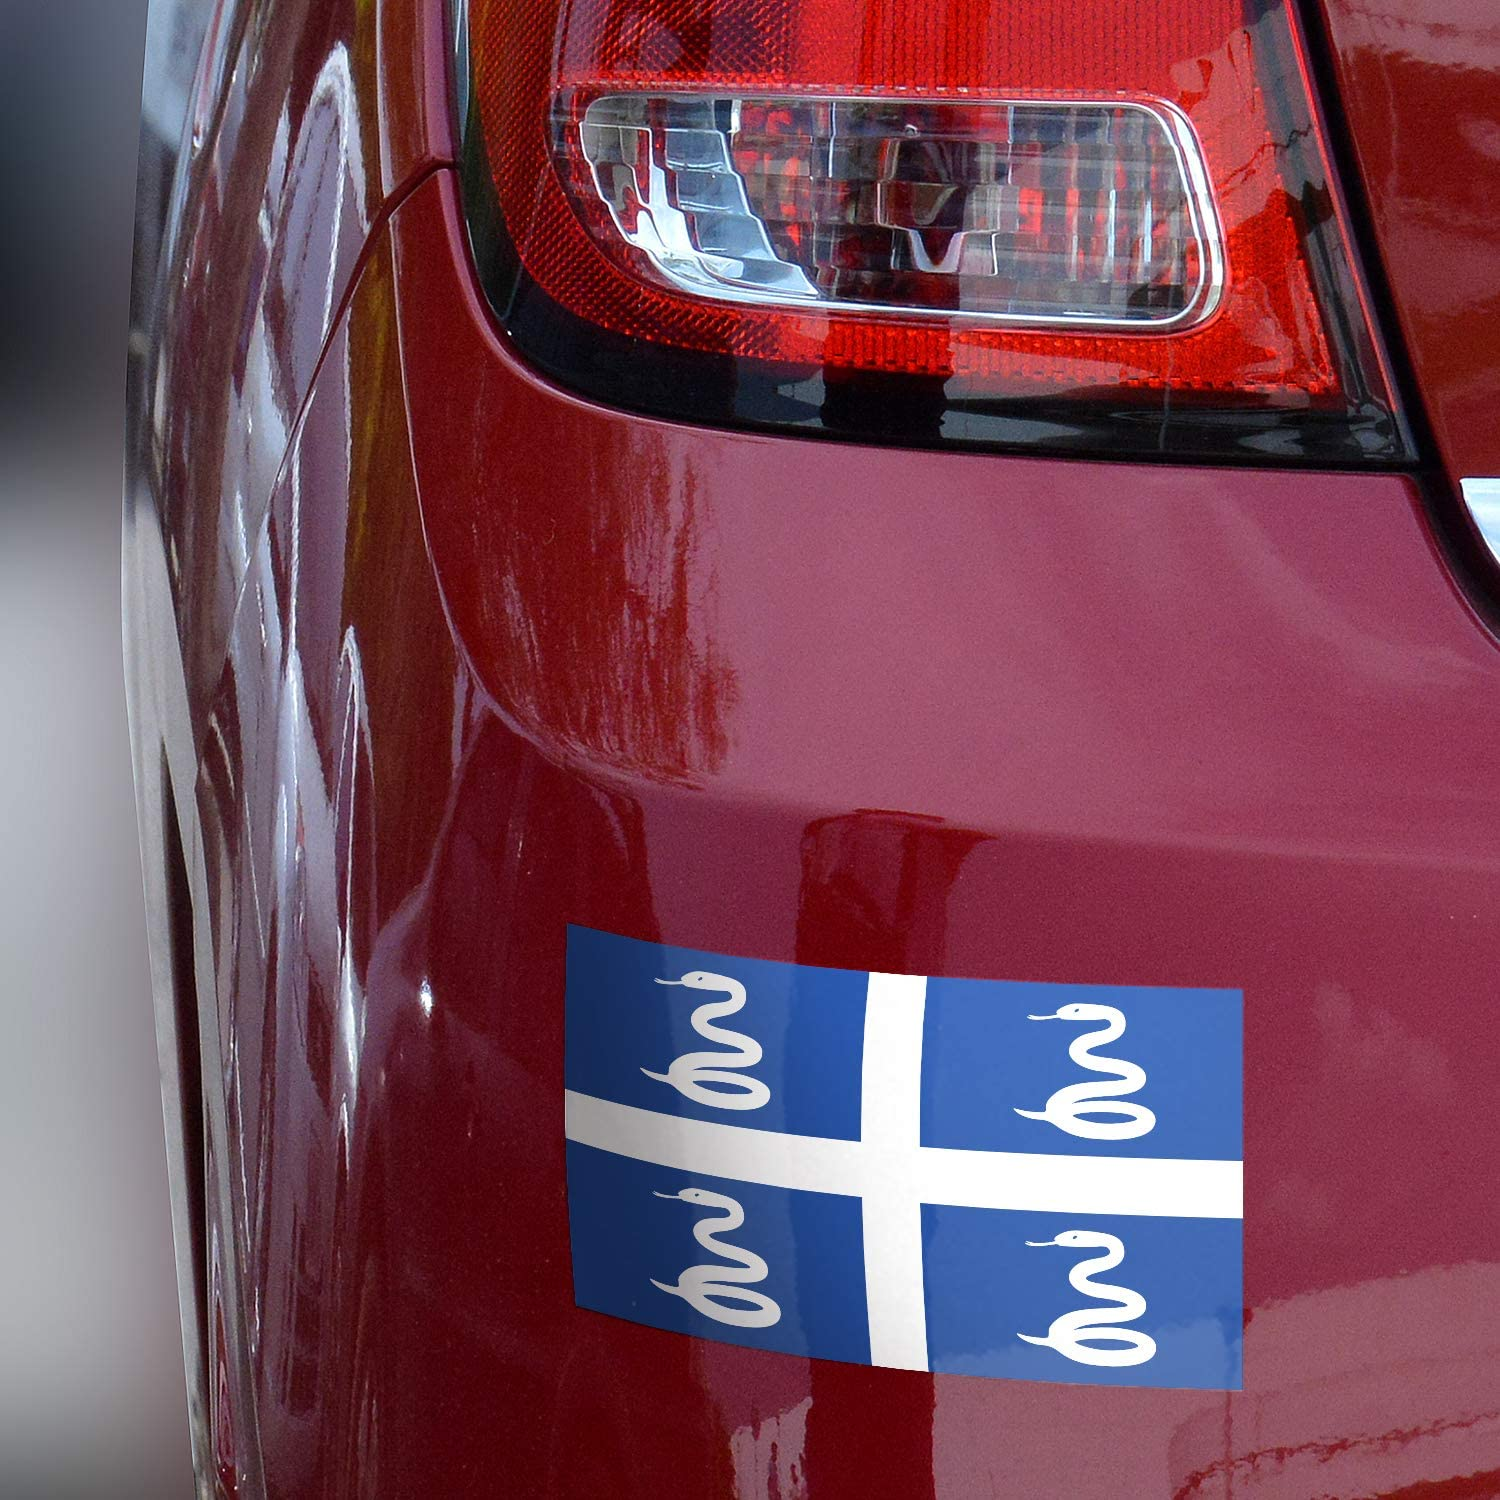 Martinique Sticker Waterproof Materials 3x5 Martinique Flag Bumper Sticker 3-Pack Made with Durable Martinique Snake Flag Bumper Sticker Flag of Martinique Bumper Sticker